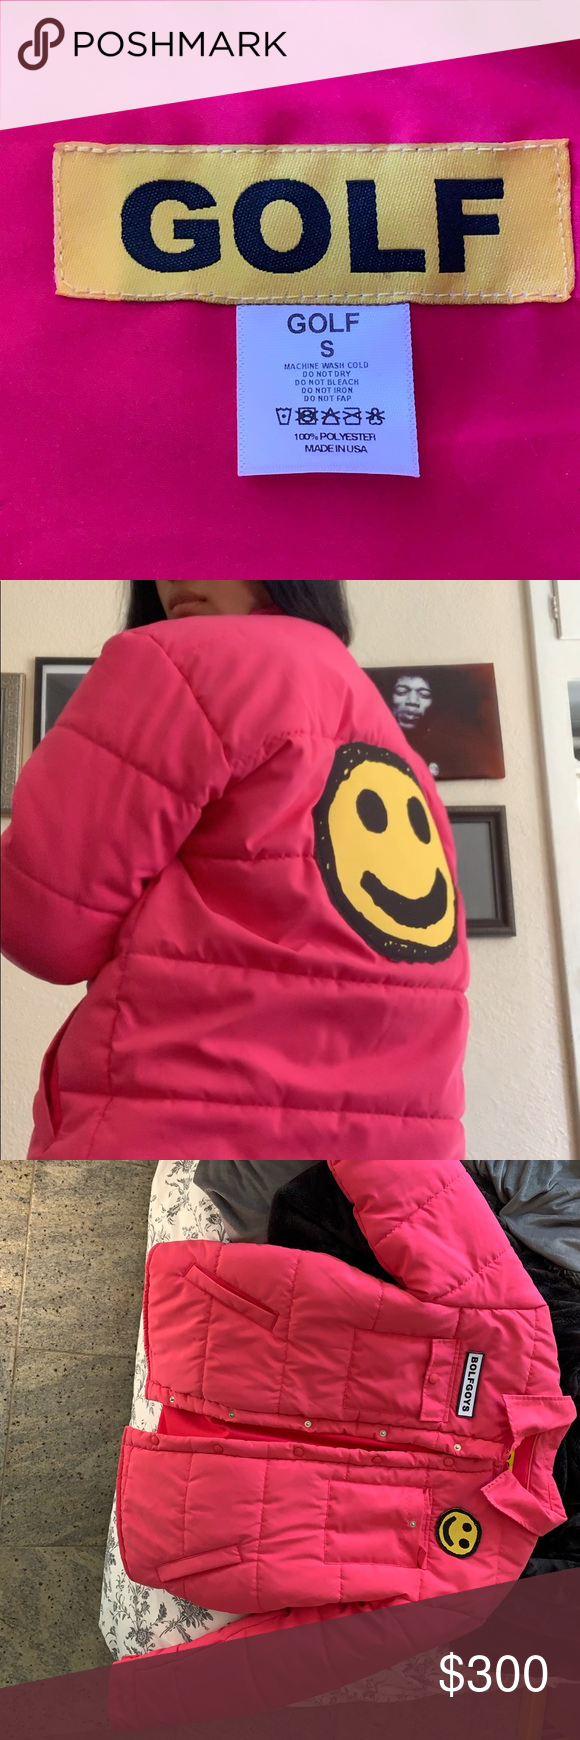 Pink Puffer Jacket Great Condition Pink Golf Wang Bolf Goys Puffer Jacket Golf Wang Jackets Coats Puffers Pink Puffer Jacket Clothes Design Puffer Jackets [ 1740 x 580 Pixel ]